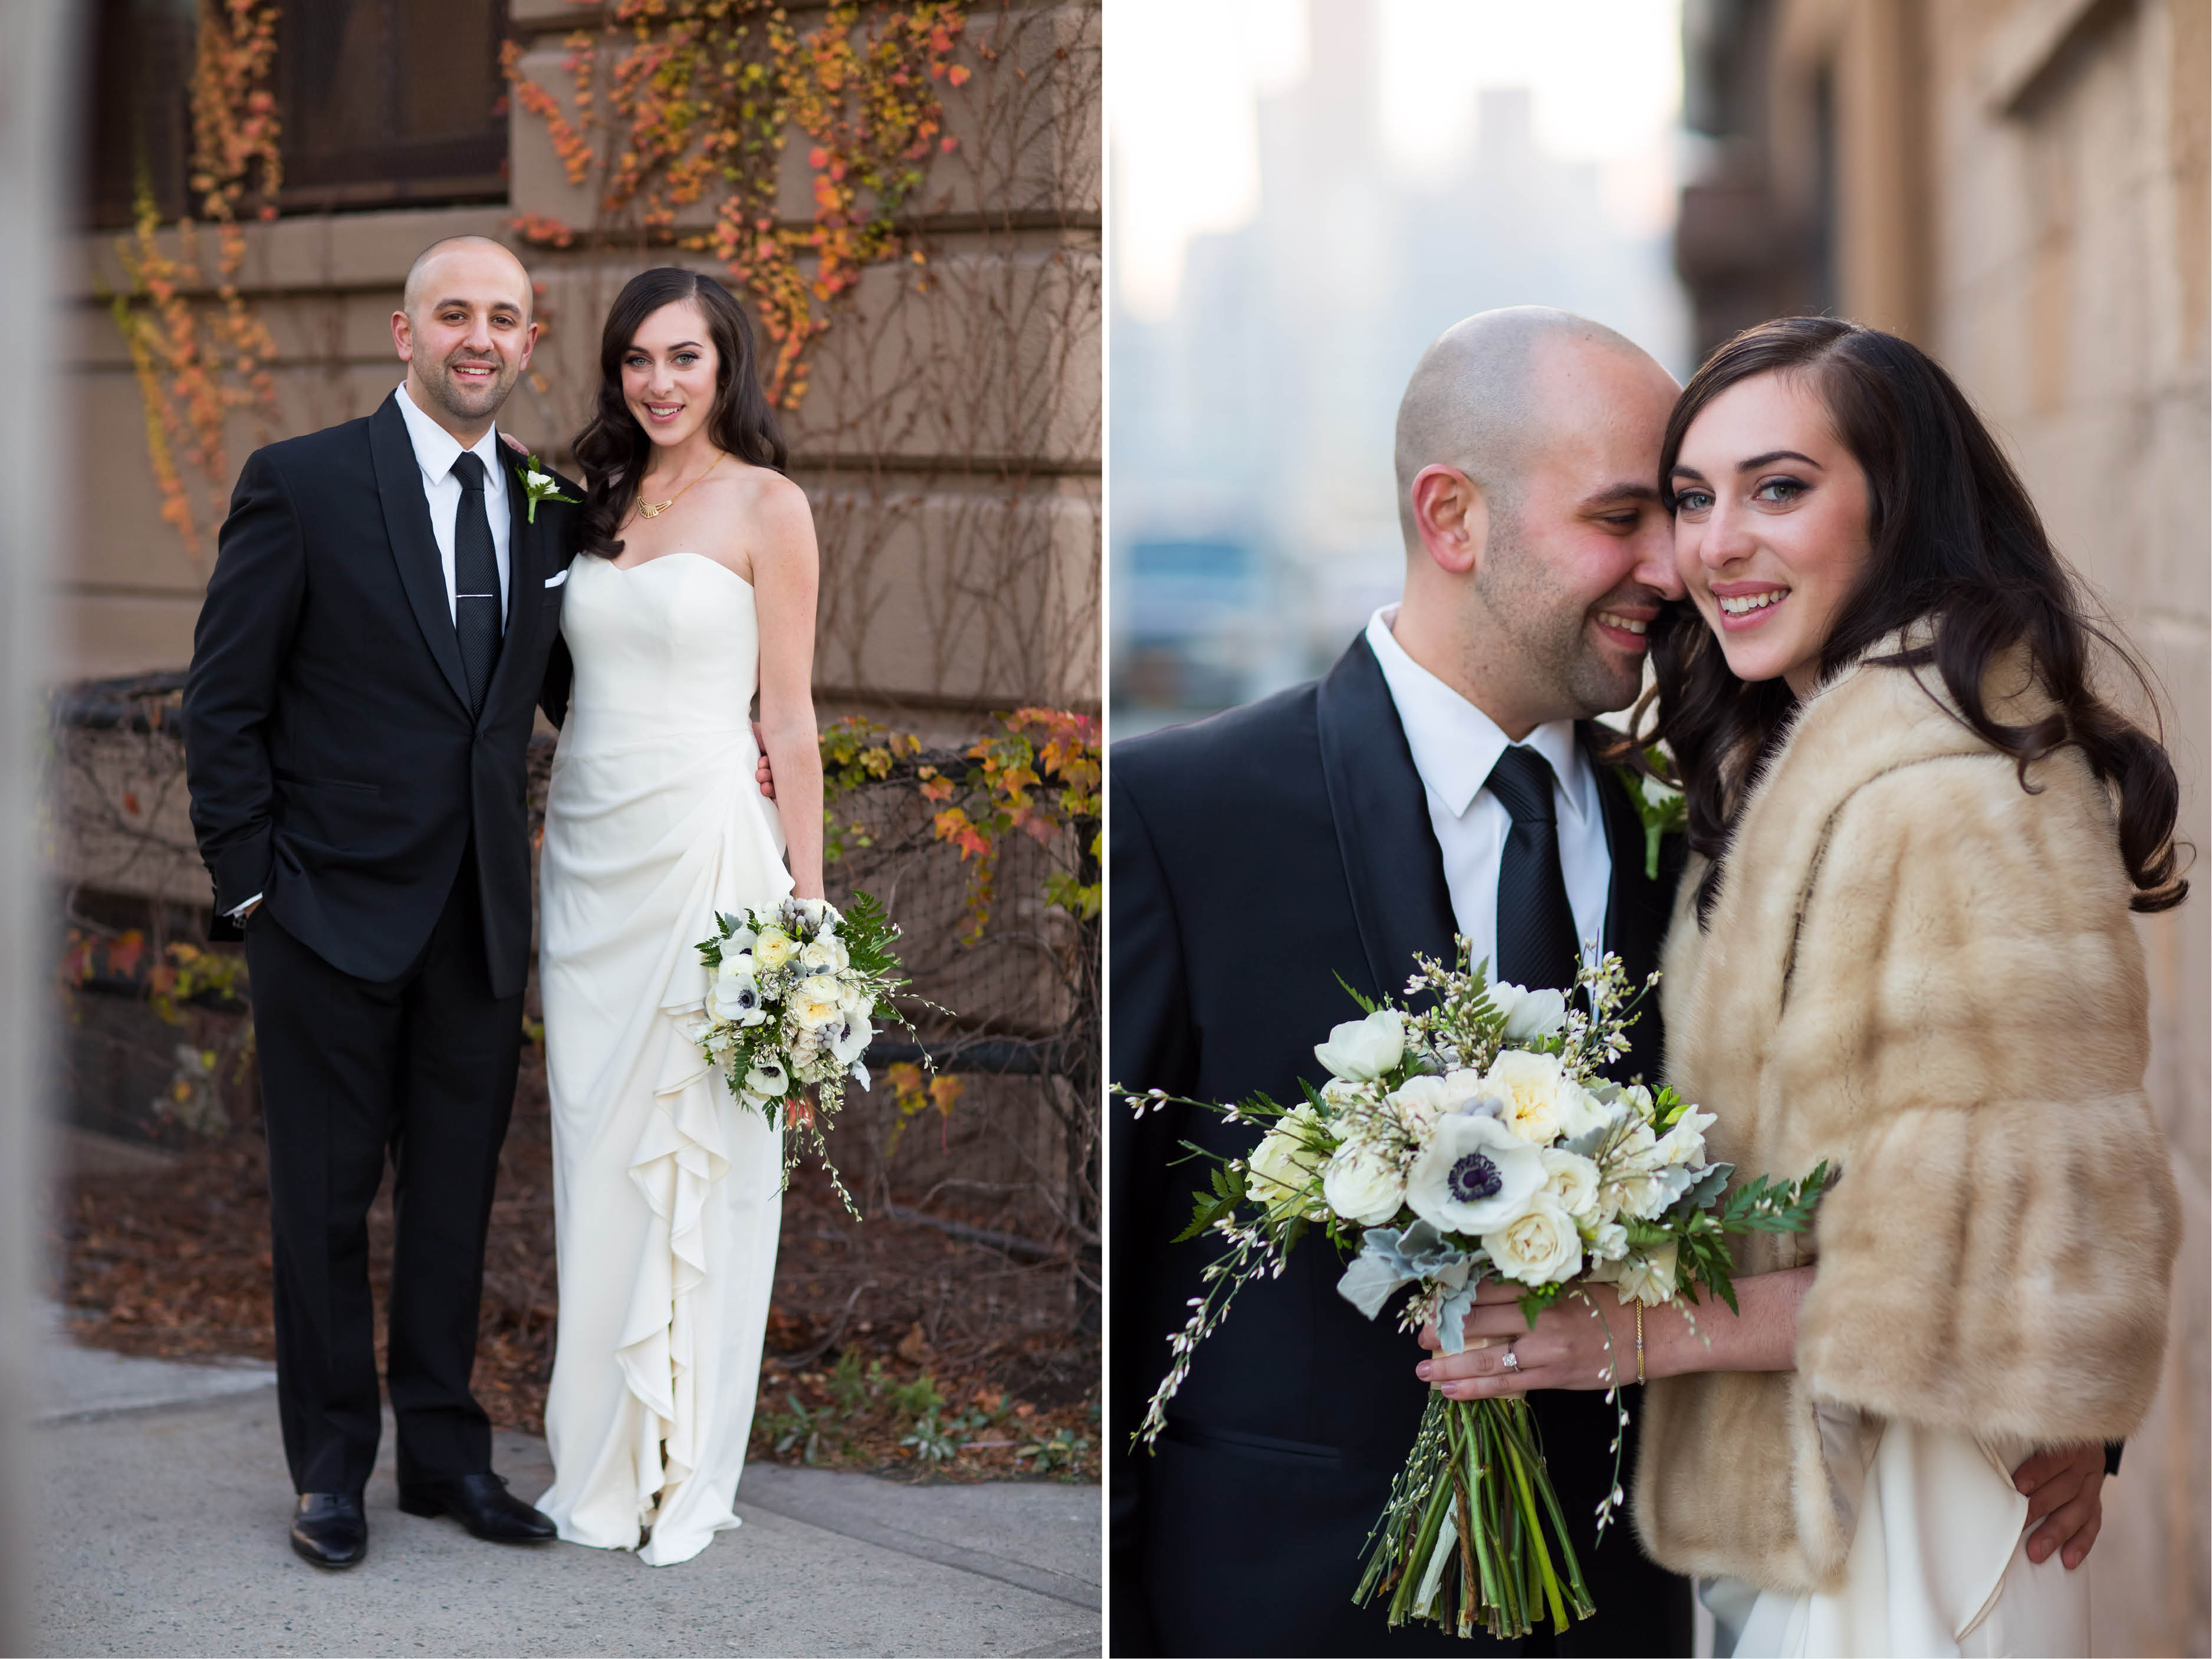 Emma_cleary_photography Metropolitan building wedding14